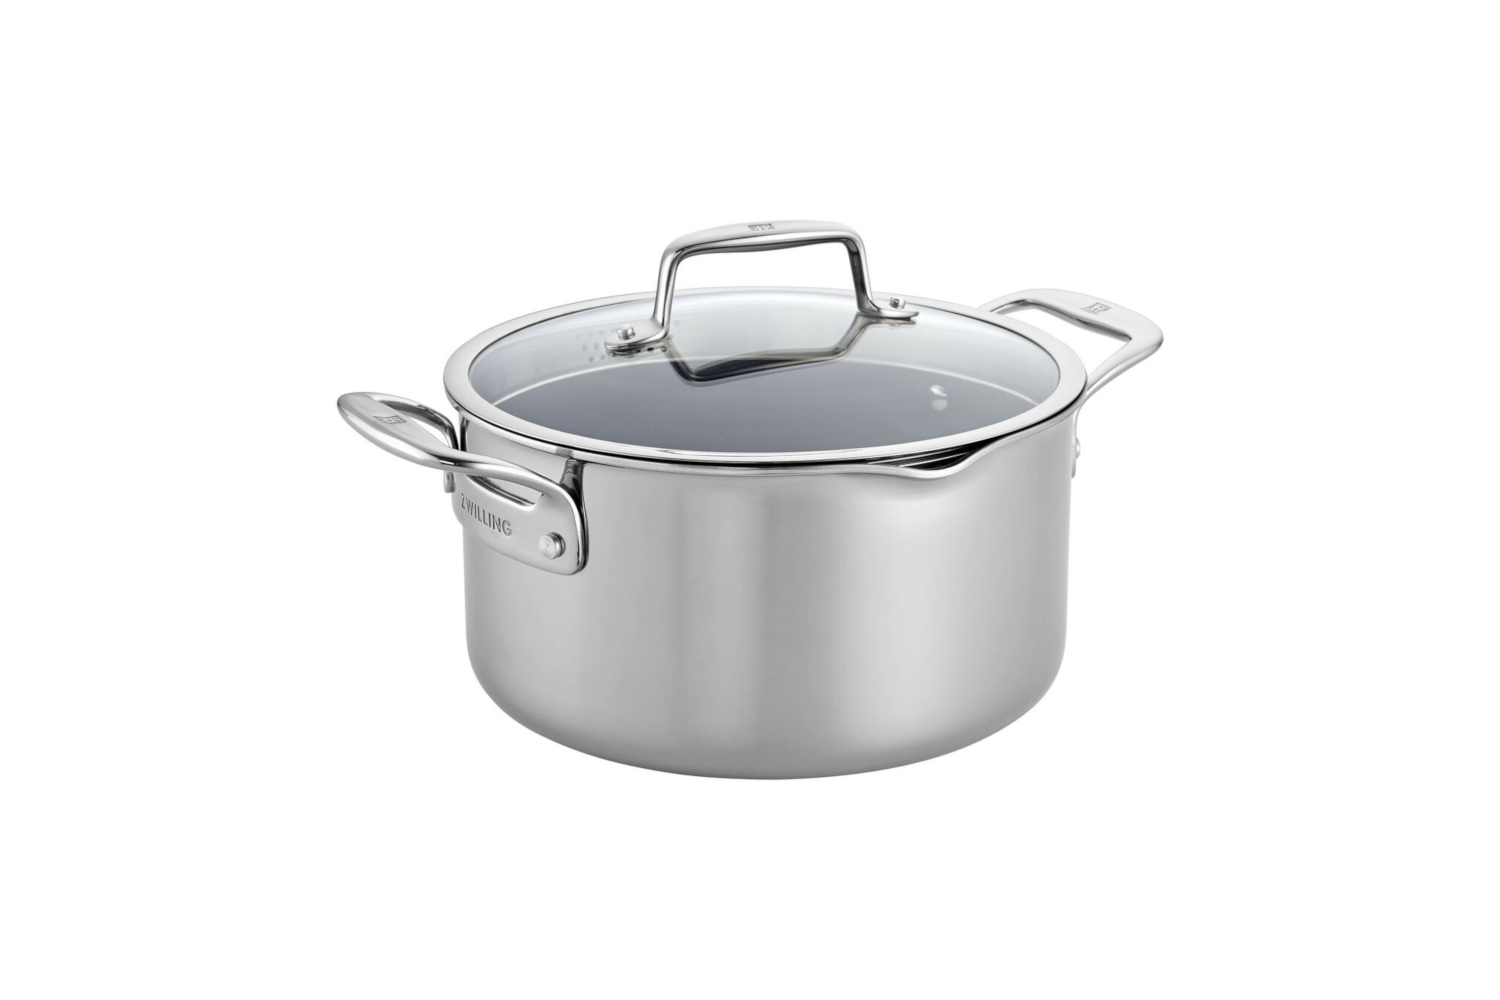 Zwilling CFX Stainless Steel 6 qt. Ceramic Nonstick Dutch Oven